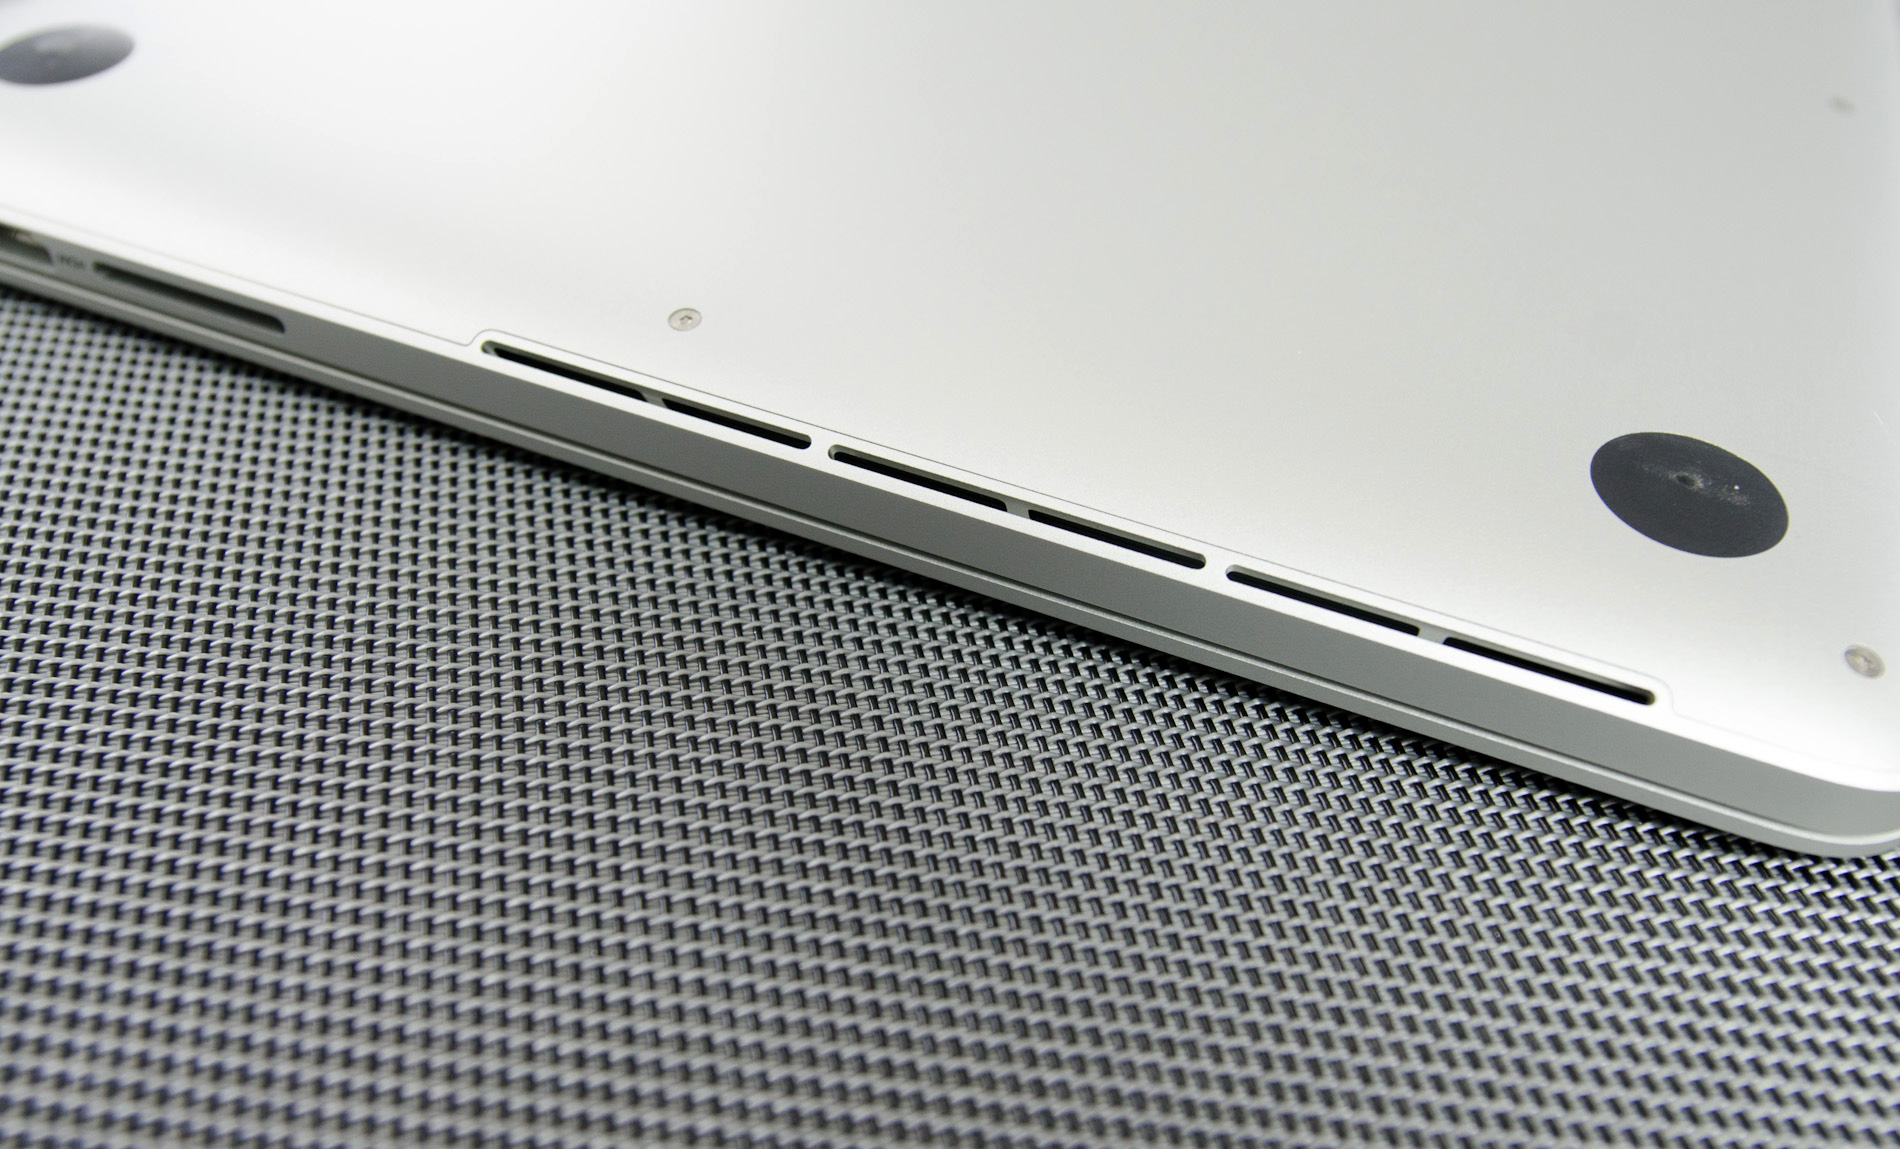 You Model And Act Reviews >> Vastly Improved Thermals - The next-gen MacBook Pro with Retina Display Review